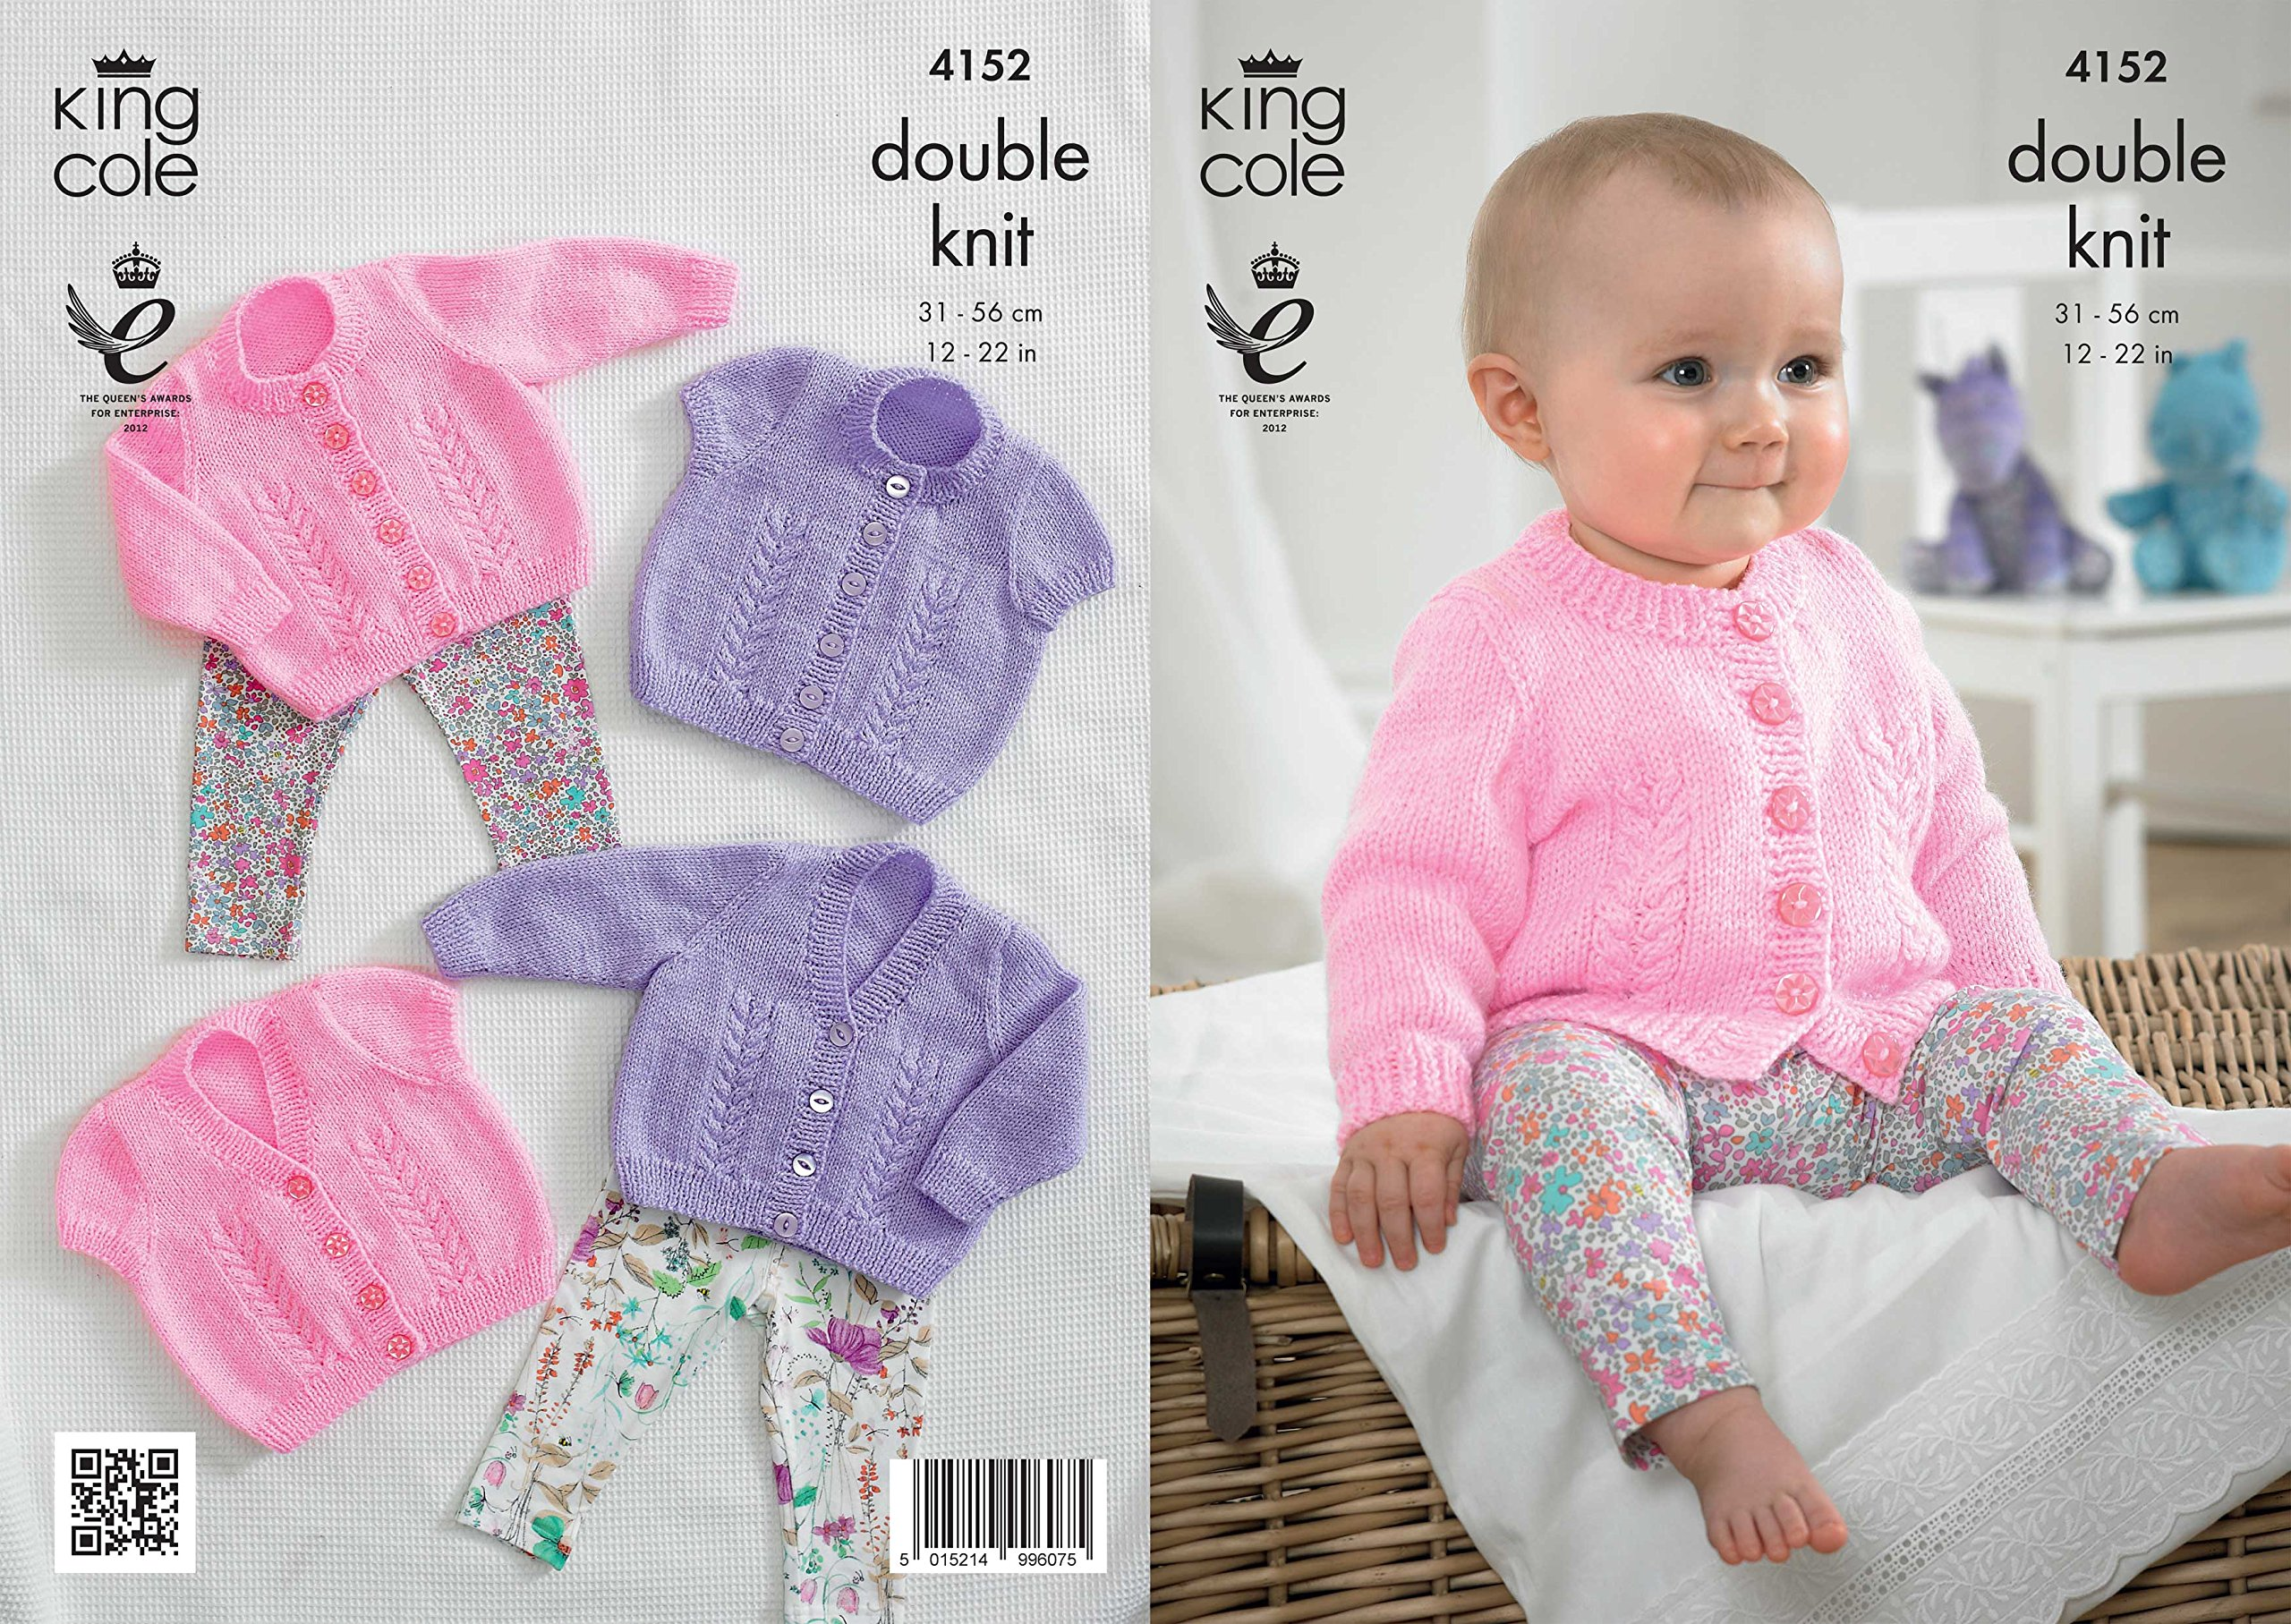 King Cole Baby Knitting Pattern 5334 In DK Cardigans And Sweater